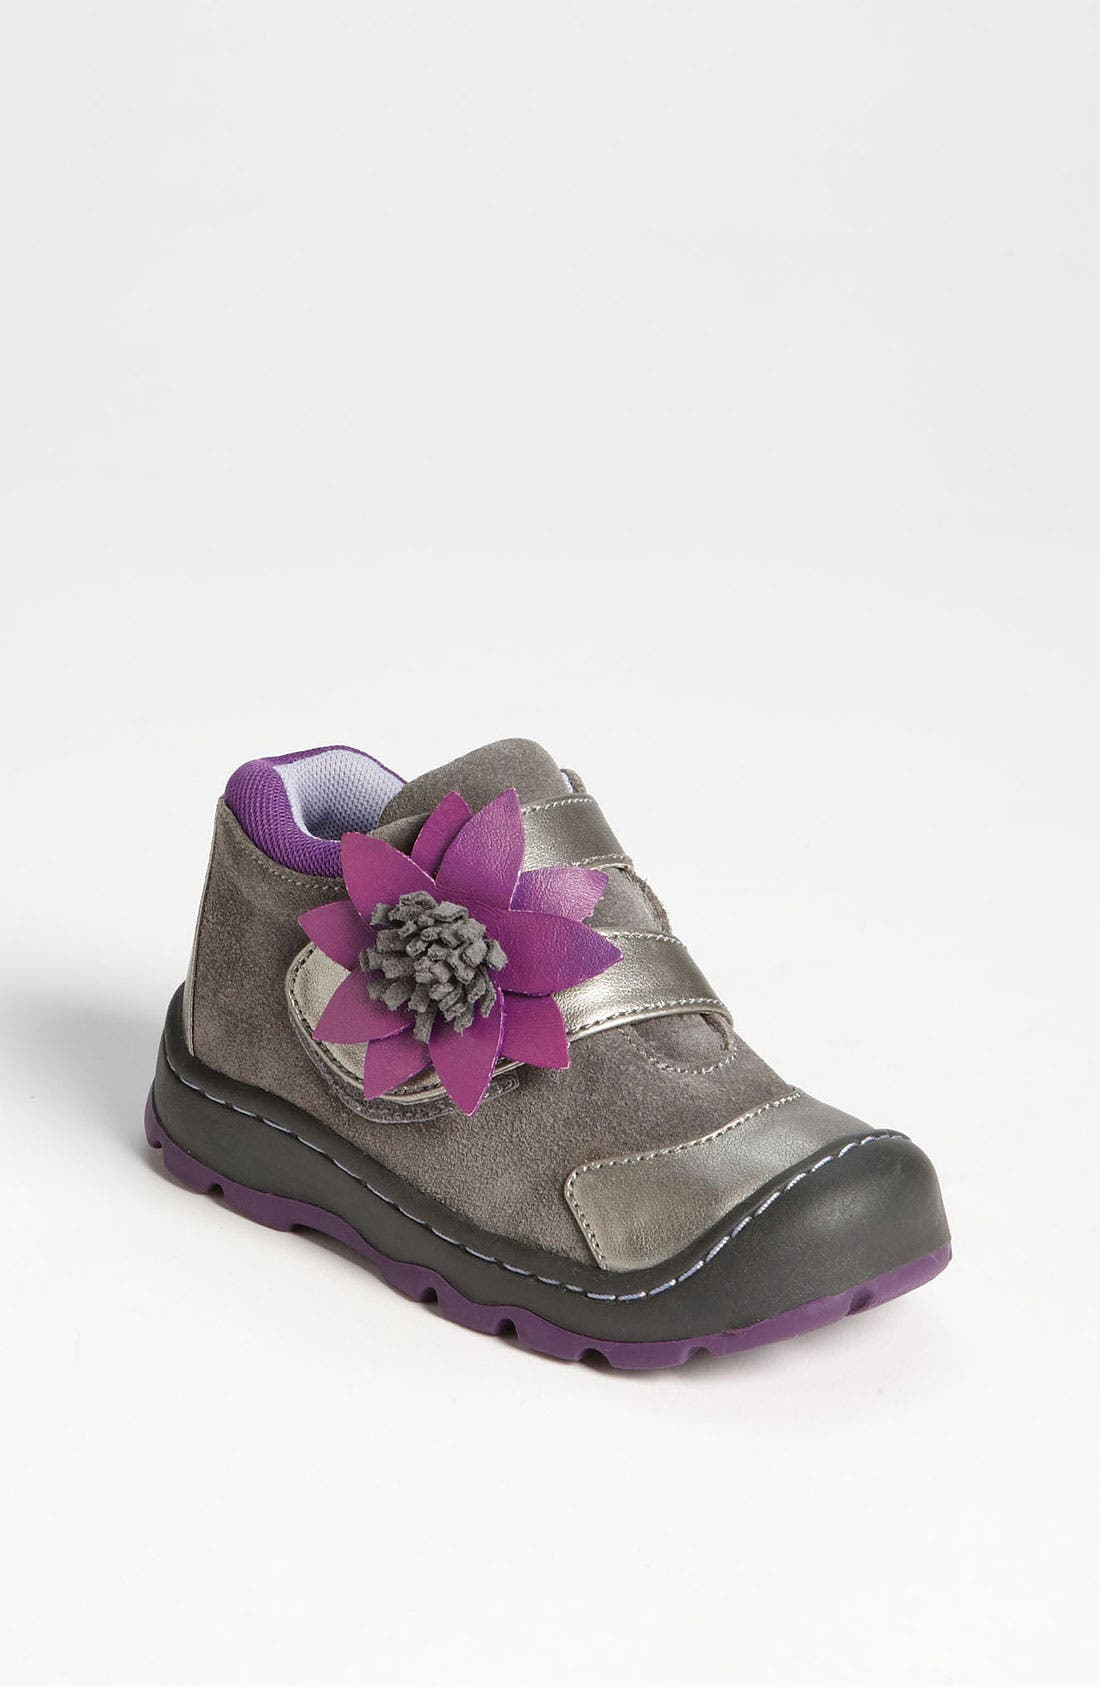 Main Image - Jumping Jacks 'Flower Burst' Sneaker (Walker & Toddler)